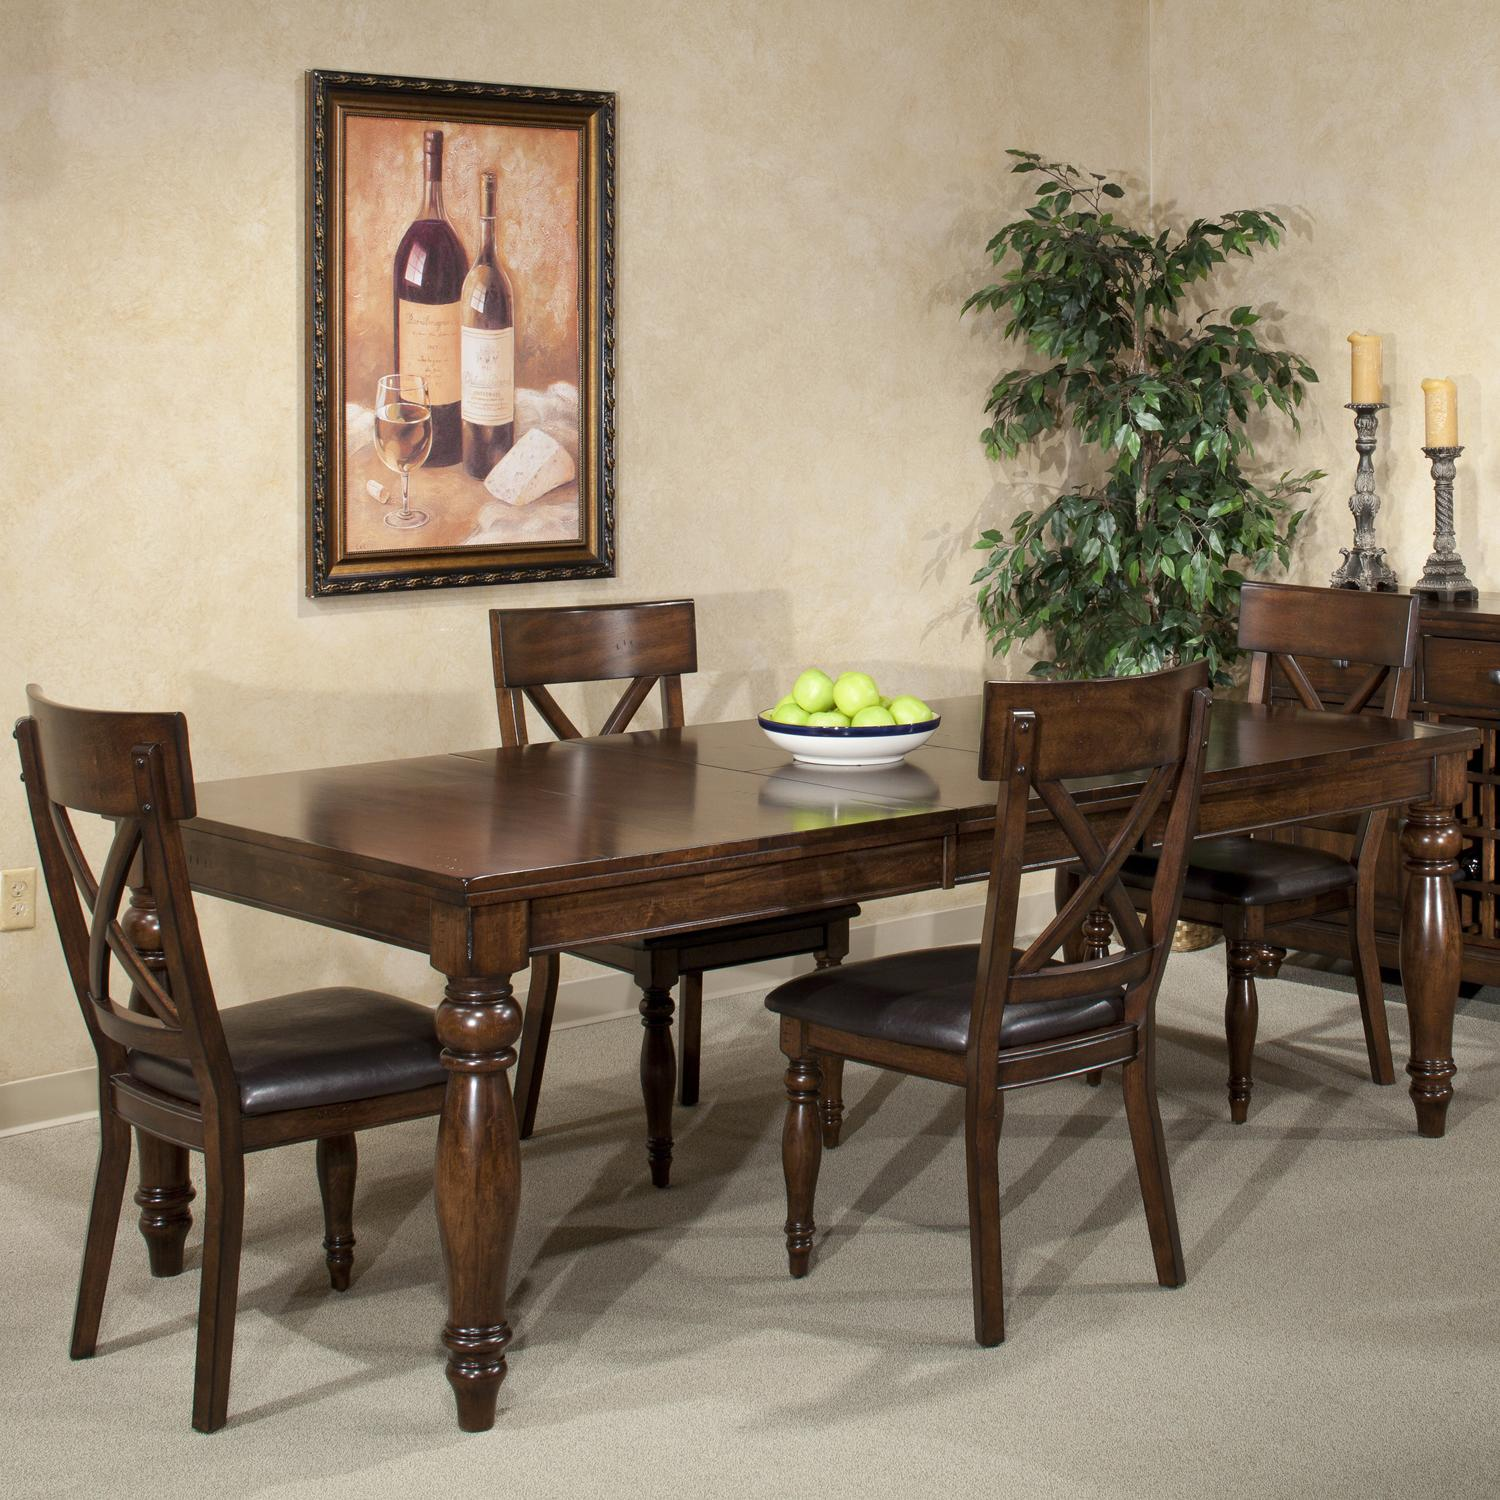 Dining Table And Chair Sets: Intercon Kingston Five Piece Table And Chair Set